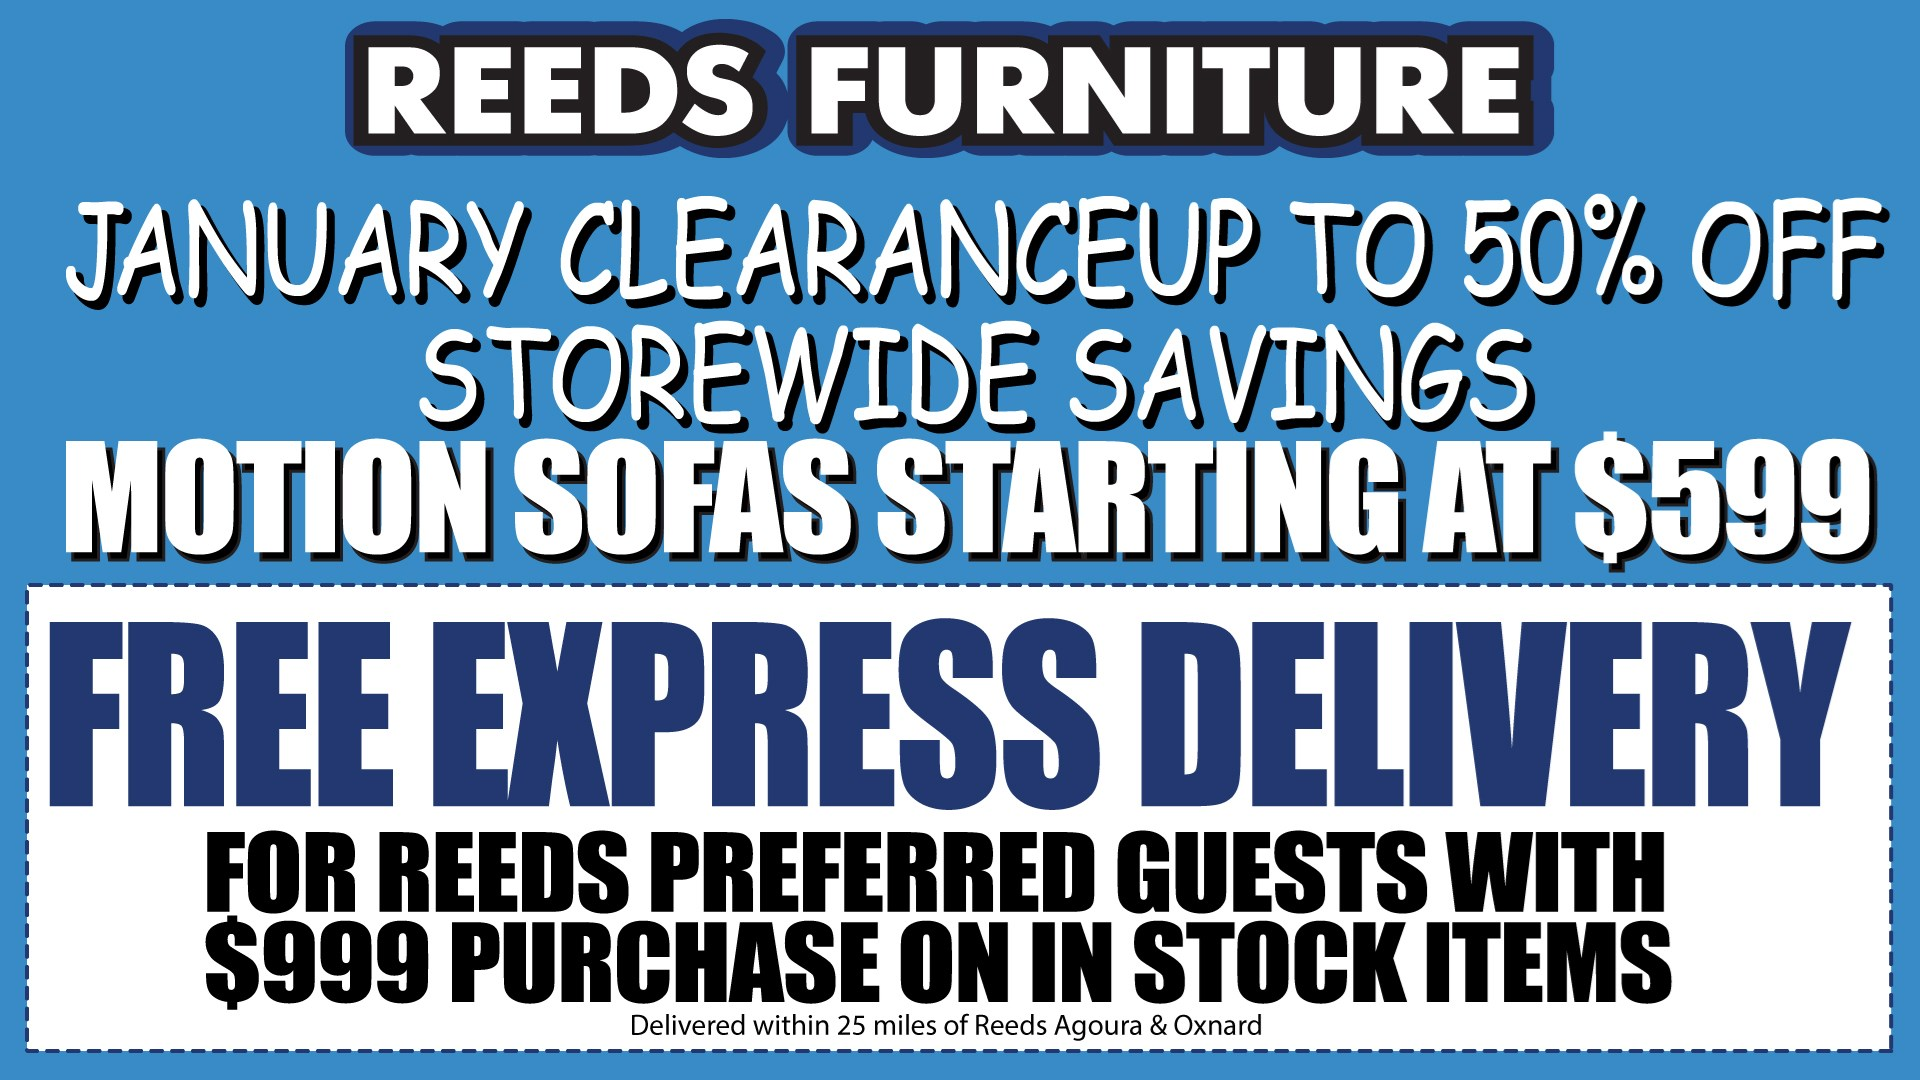 Reeds Furniture January Clearance